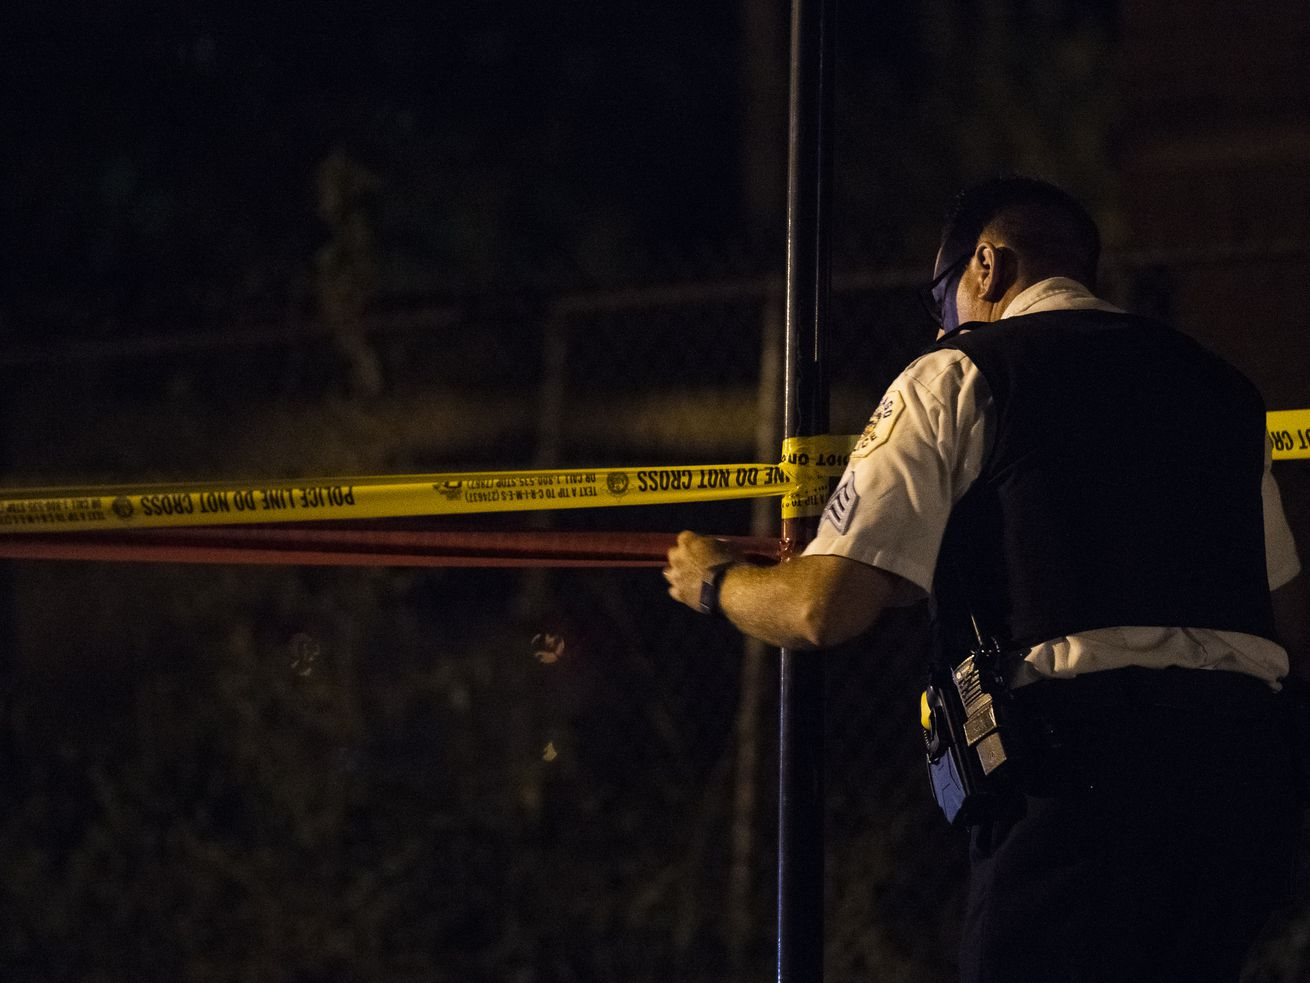 One person was shot since 5 p.m. March 5, 2021 in Chicago.